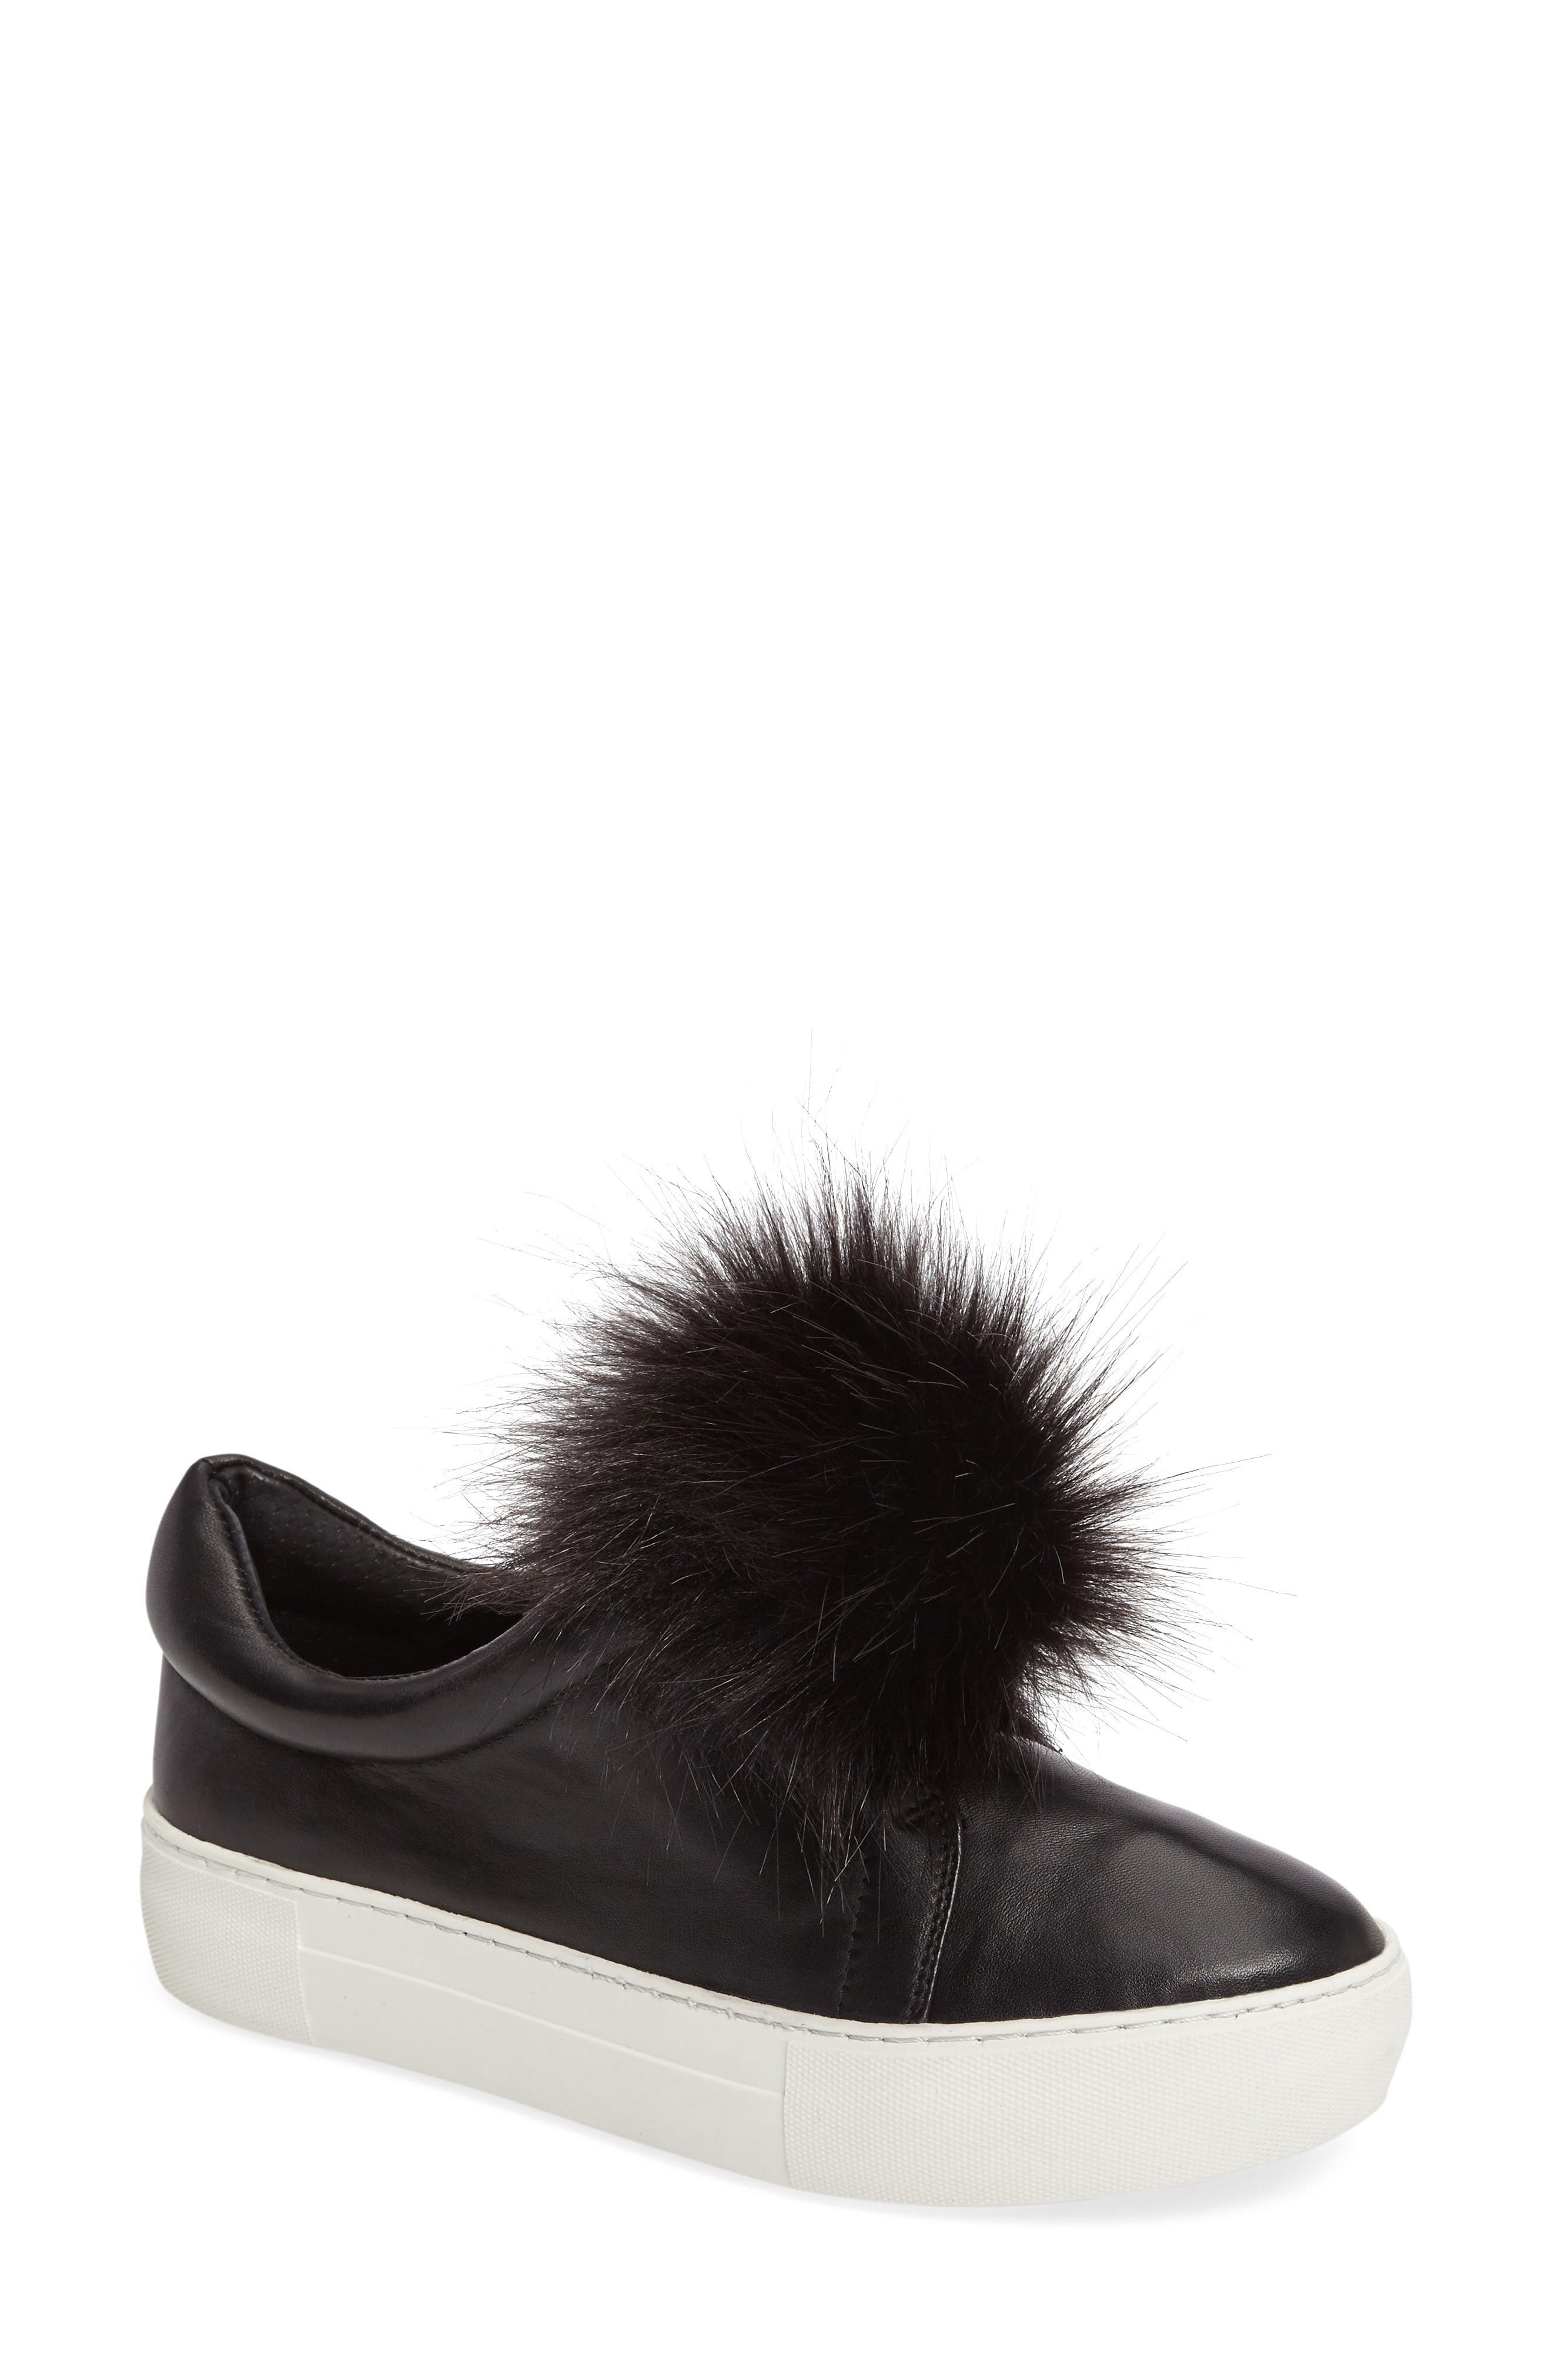 Alternate Image 1 Selected - JSlides Aurora Faux Fur Platform Sneaker (Women)